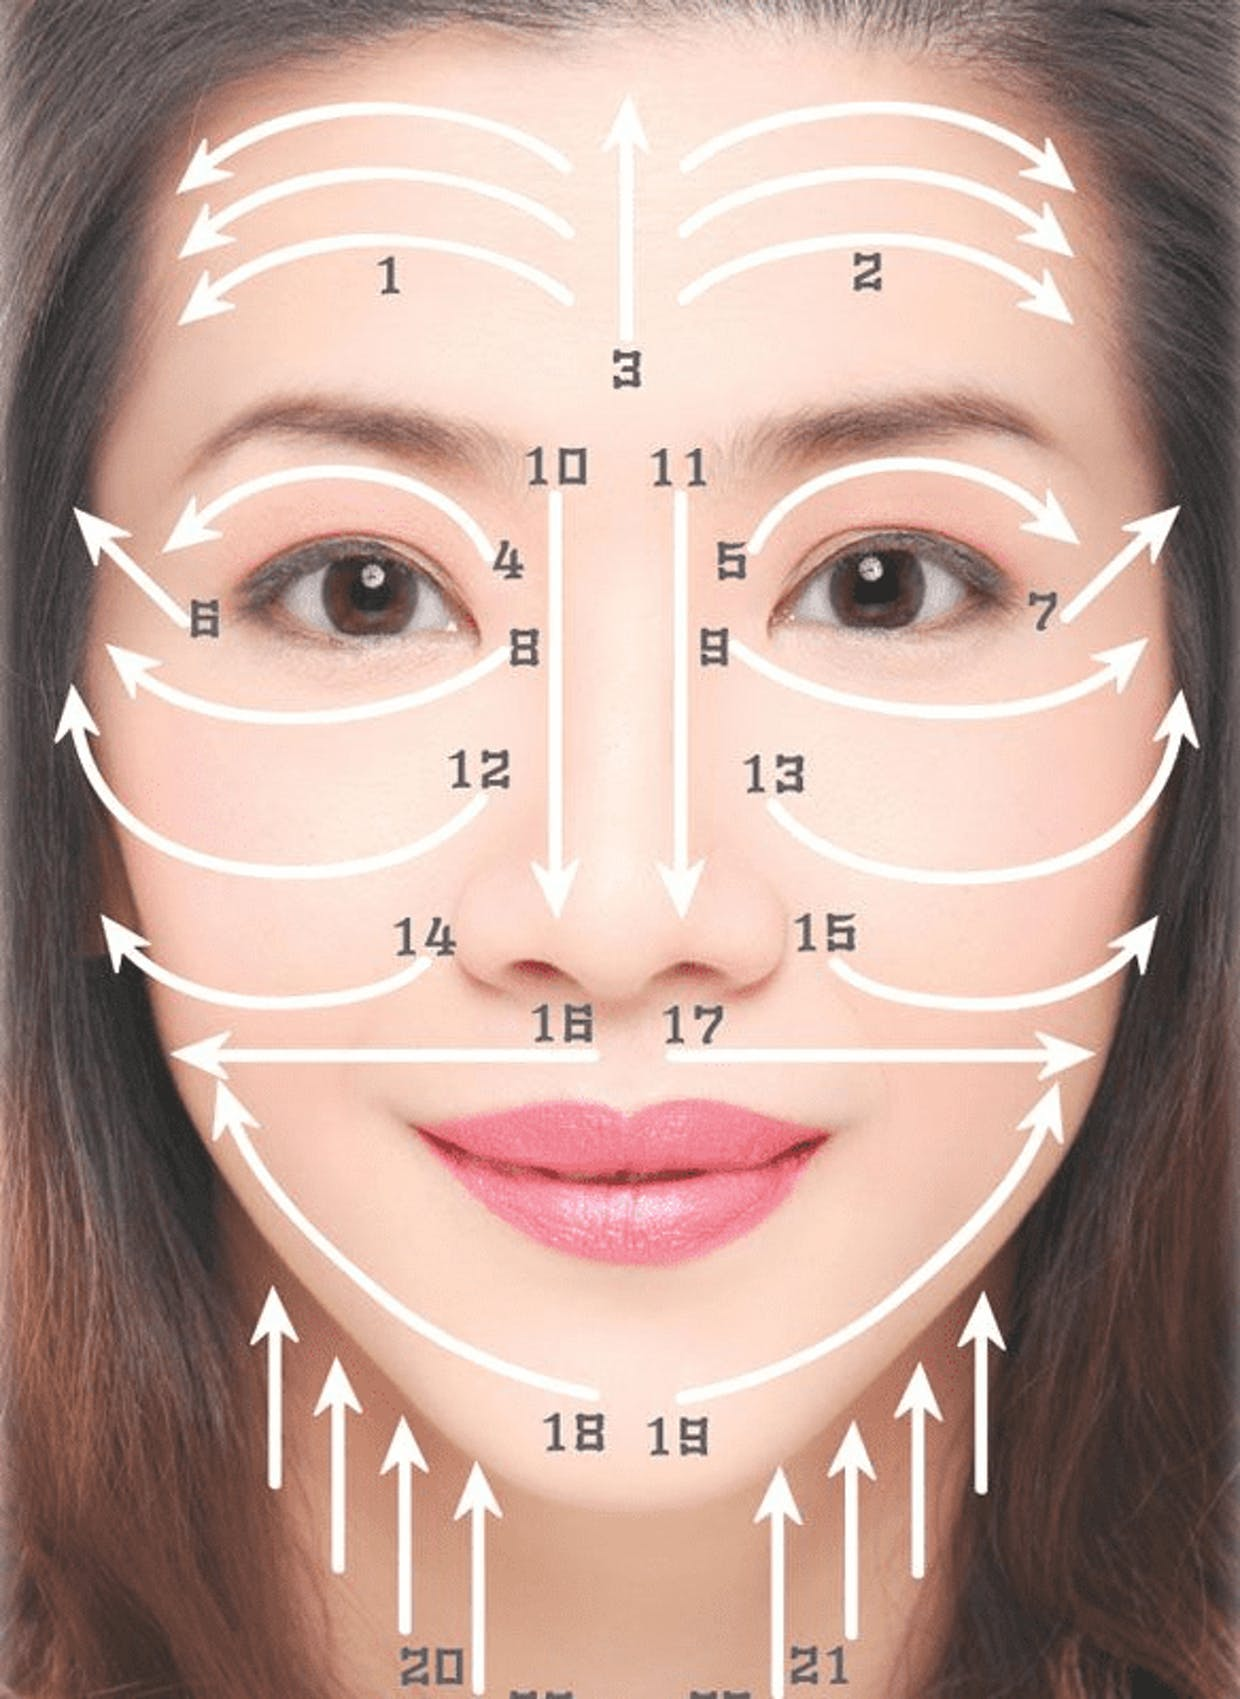 I want to have a more defined and V shaped Jaw line, What would you recommend: Gua Sha or face Roller?